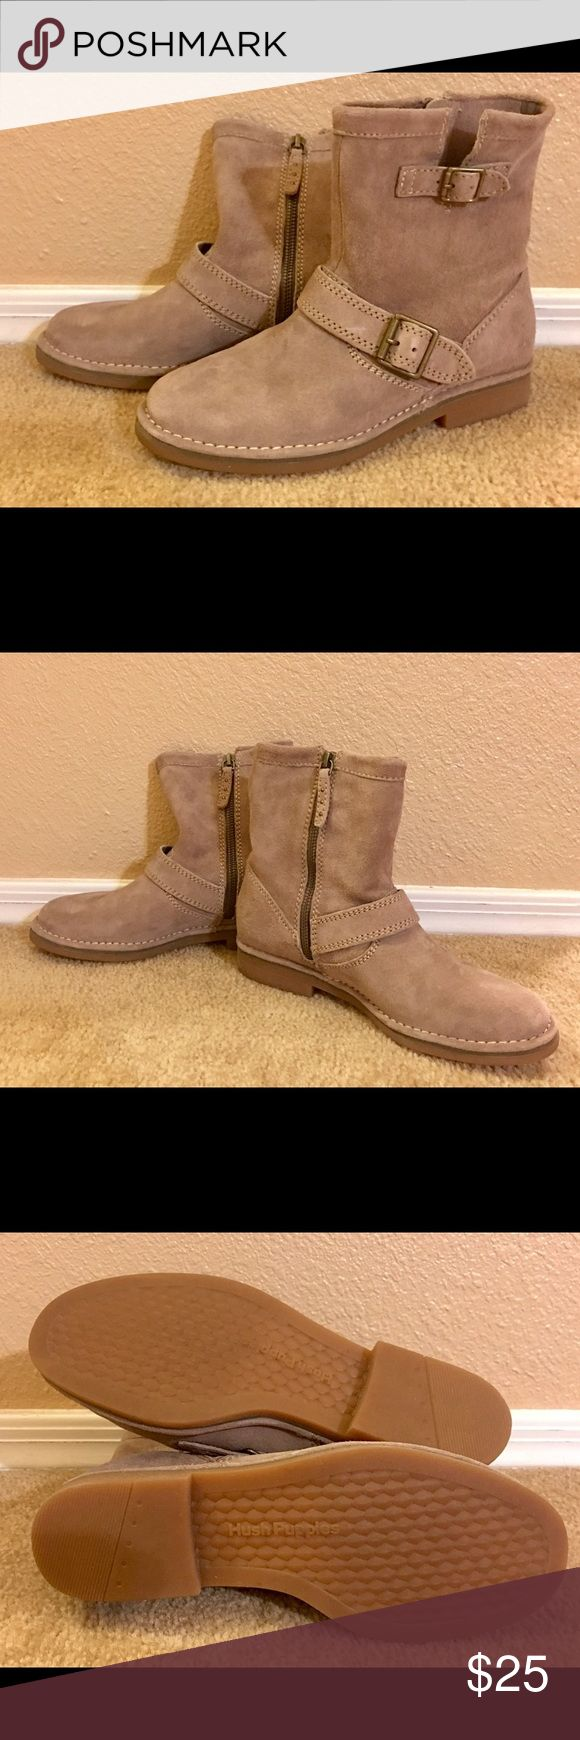 Hush Puppies Suede Ankle Boots Hush Puppies — Taupe Aydin Catelyn Suede Ankle Boot, Women's Size 7.  Practically brand new - only worn once for a Halloween costume. Hush Puppies Shoes Ankle Boots & Booties